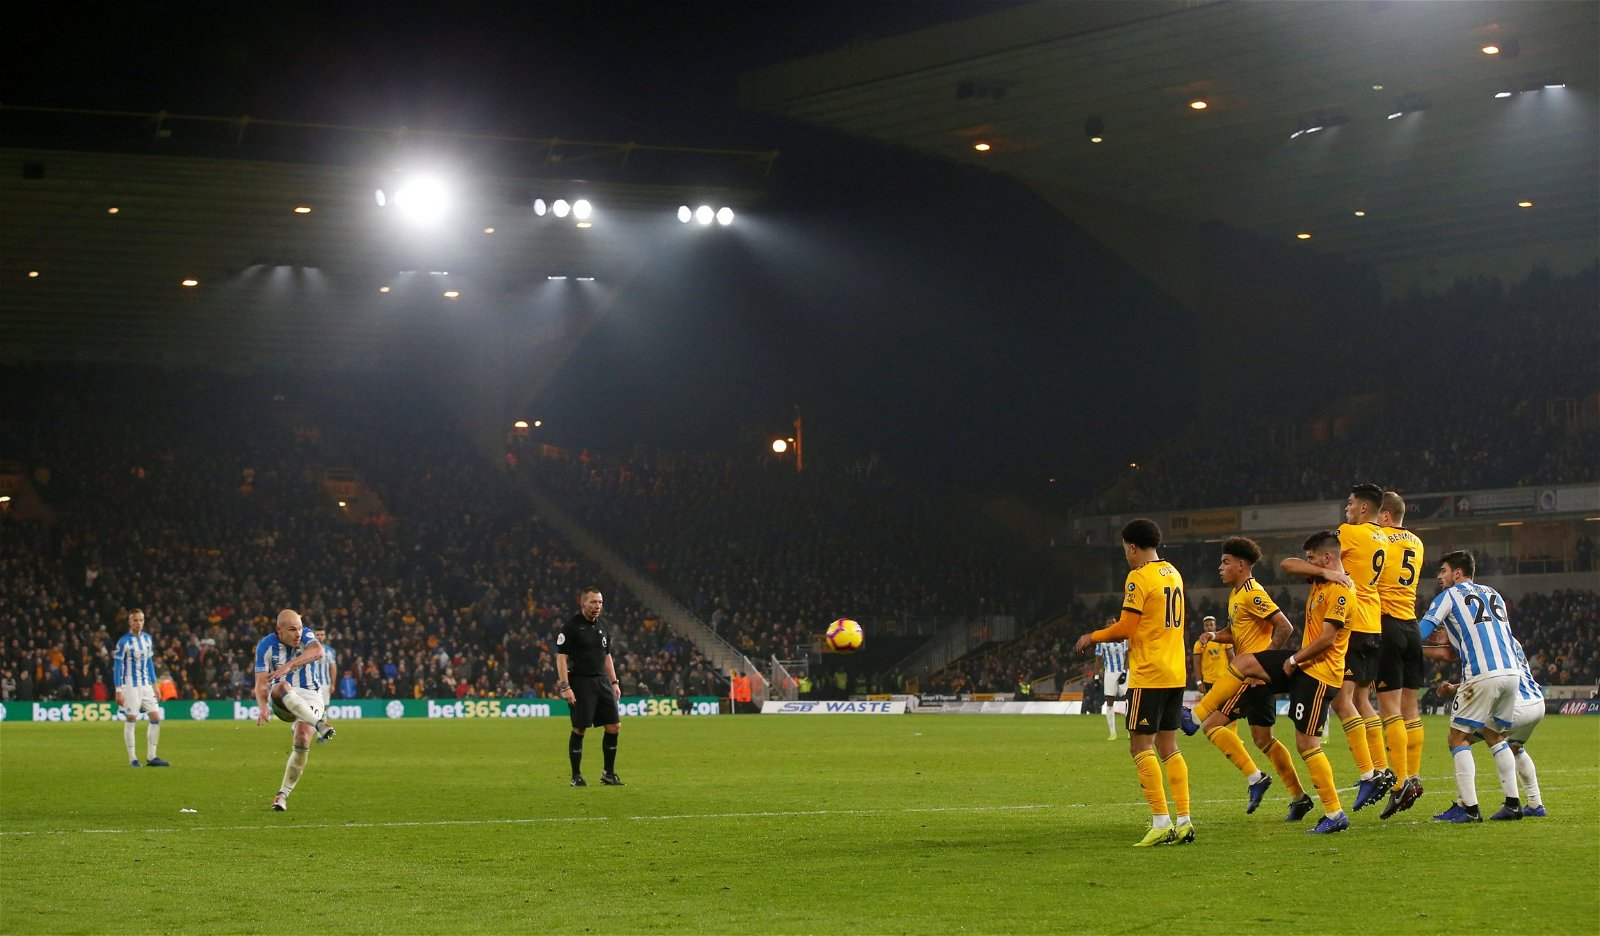 Huddersfield Town's Aaron Mooy scores their second goal v Wolverhampton Wanderers